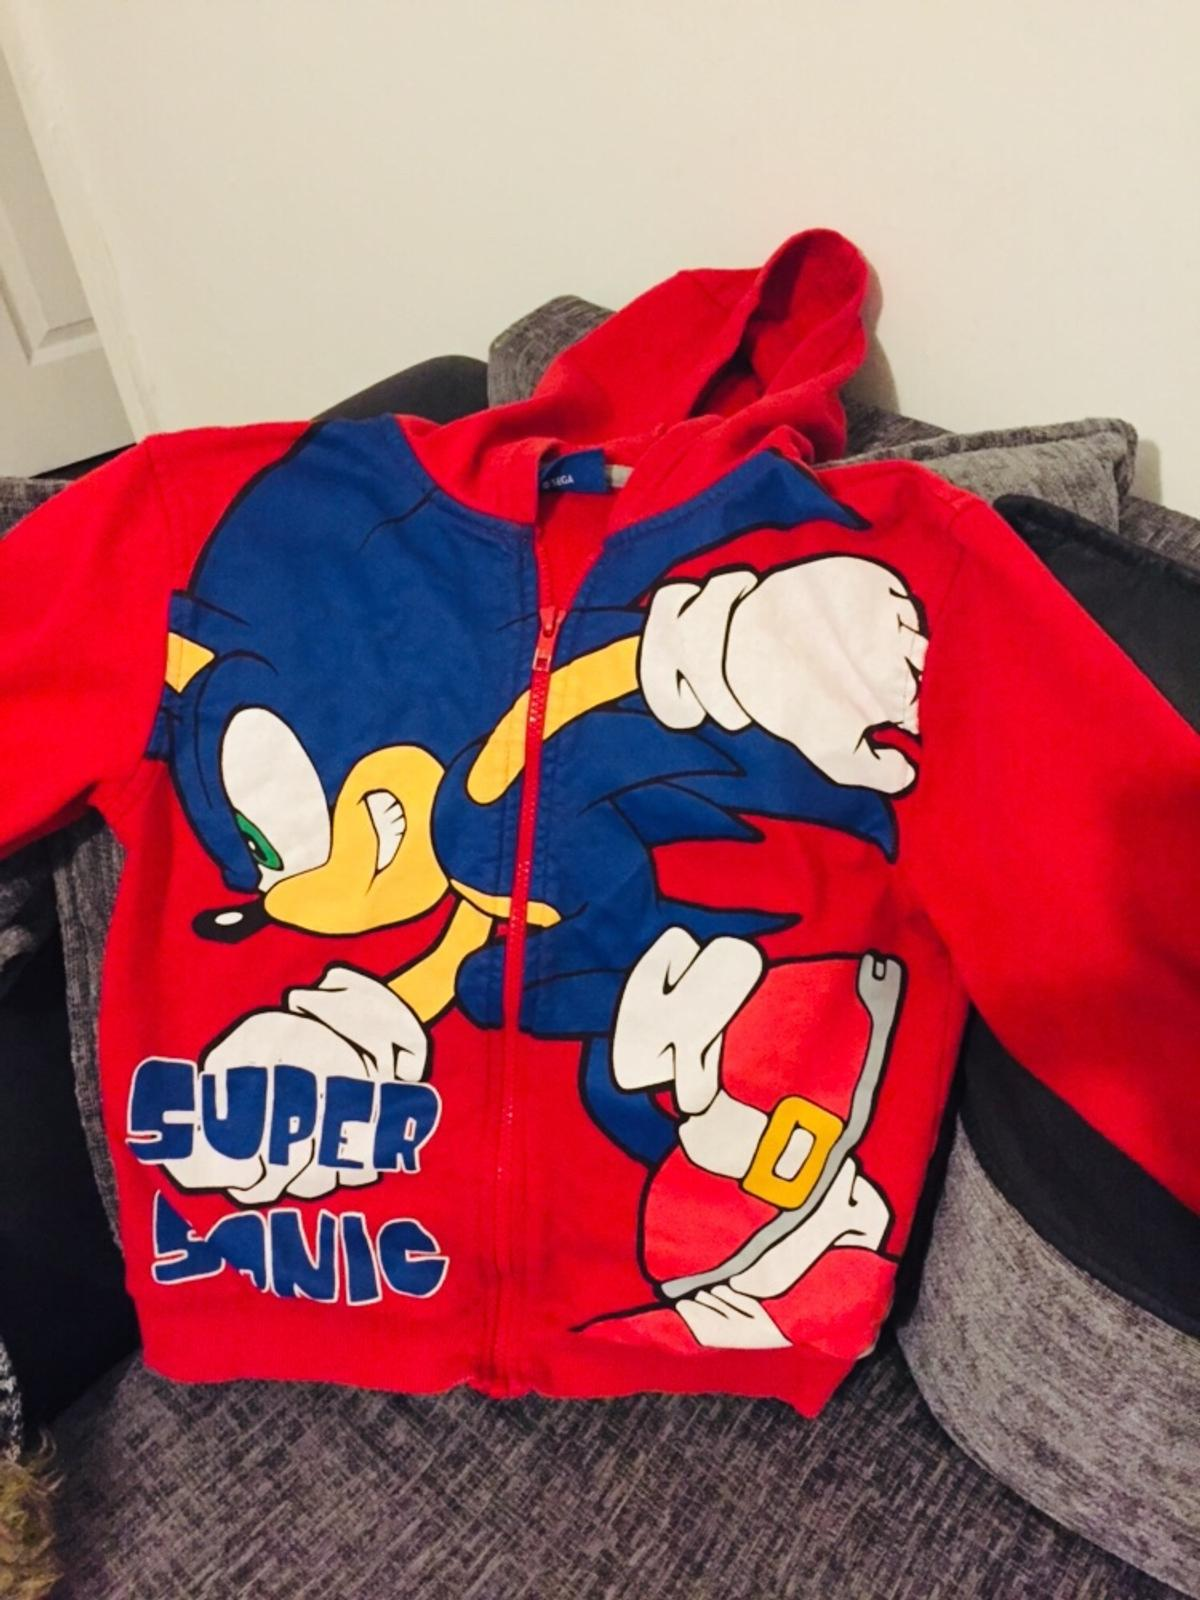 Sonic The Hedgehog Jacket In Wigan For 4 00 For Sale Shpock